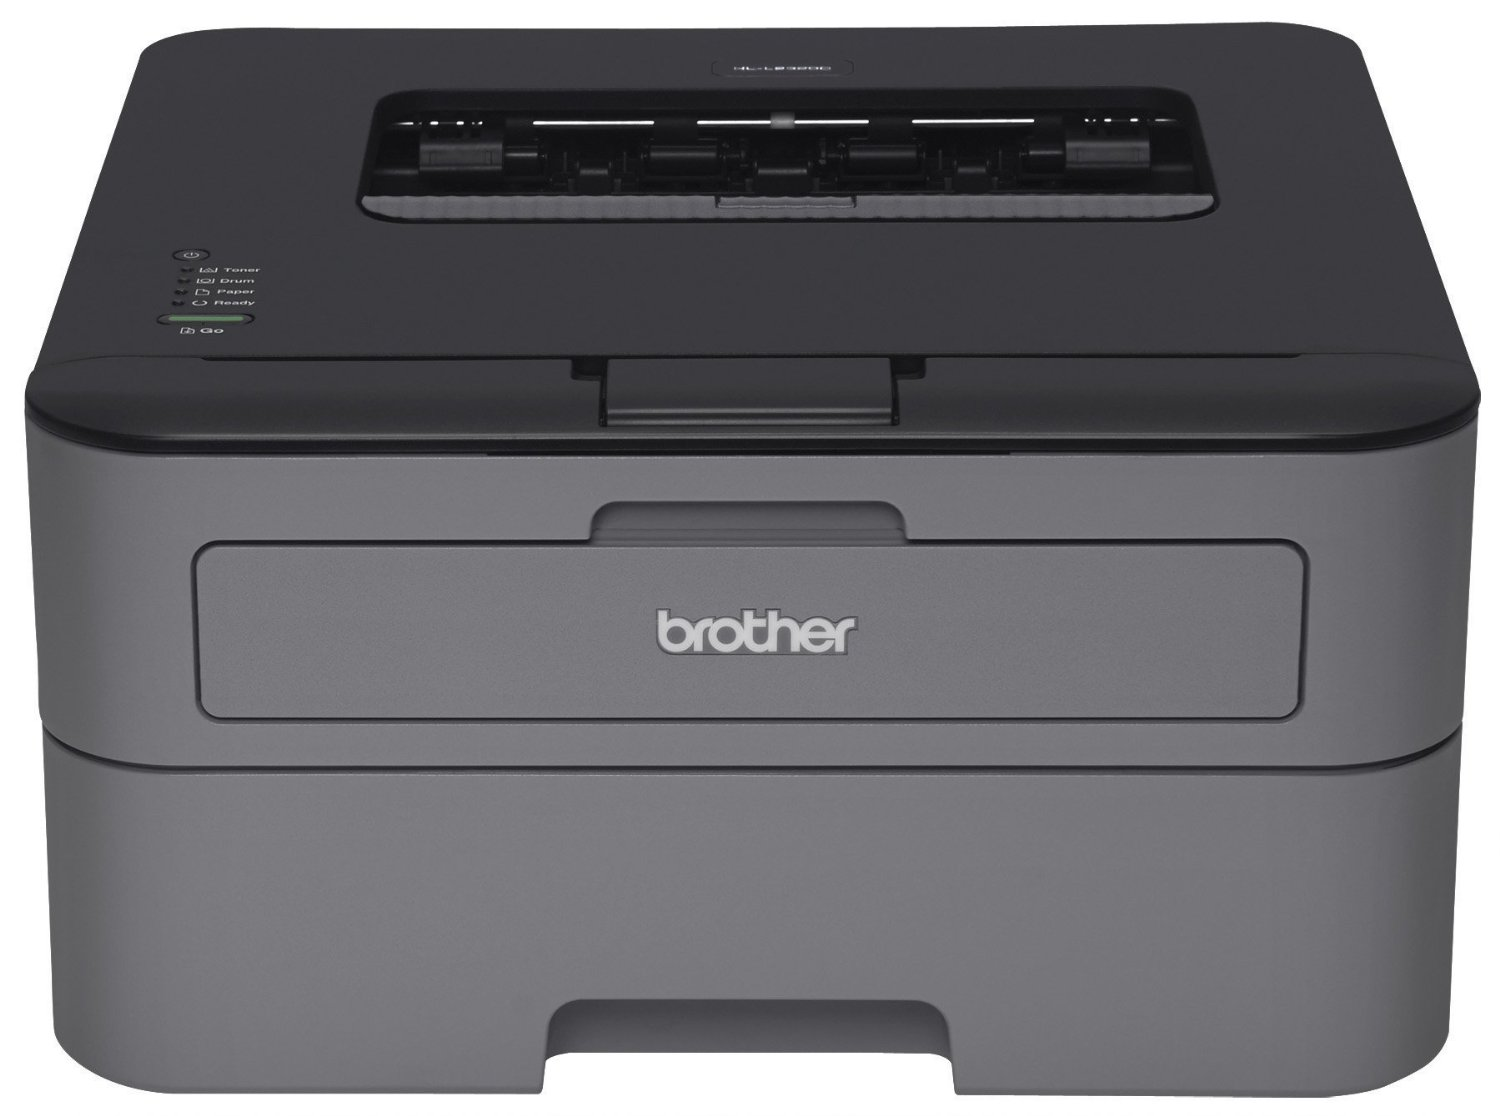 BROTHER HL 630 DRIVERS UPDATE